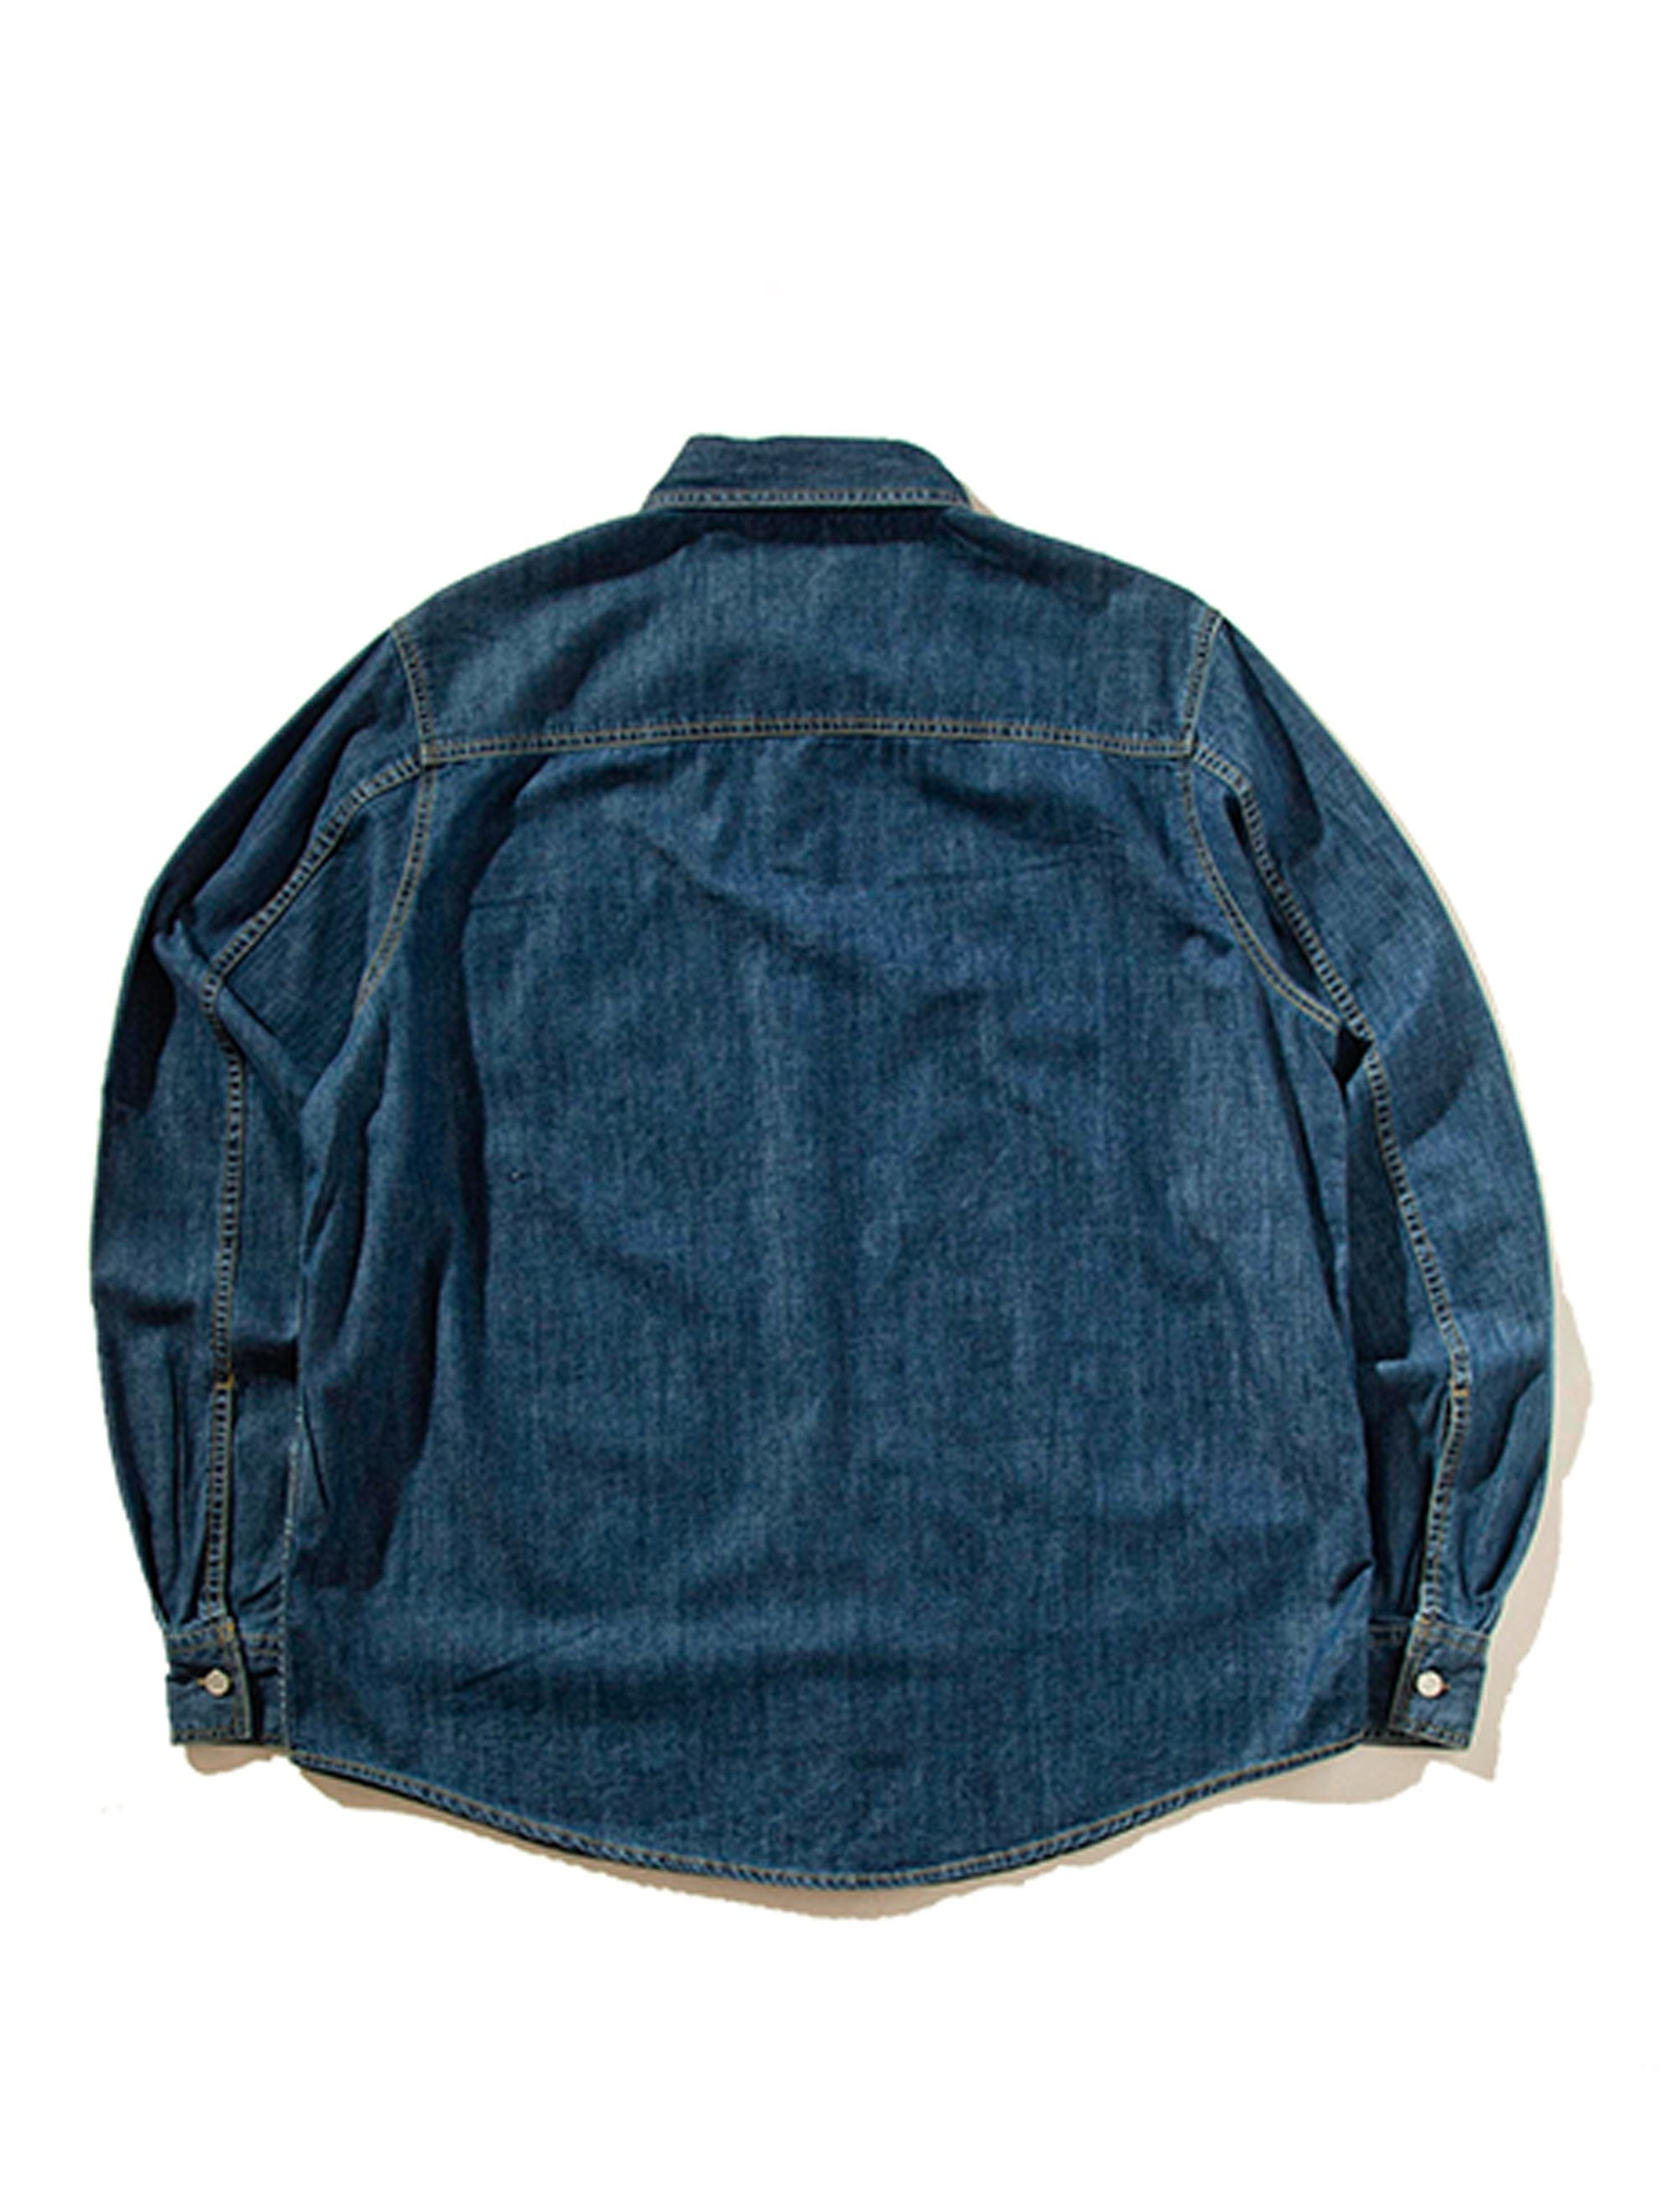 XL Smoker's Collection Jean Shirt 9